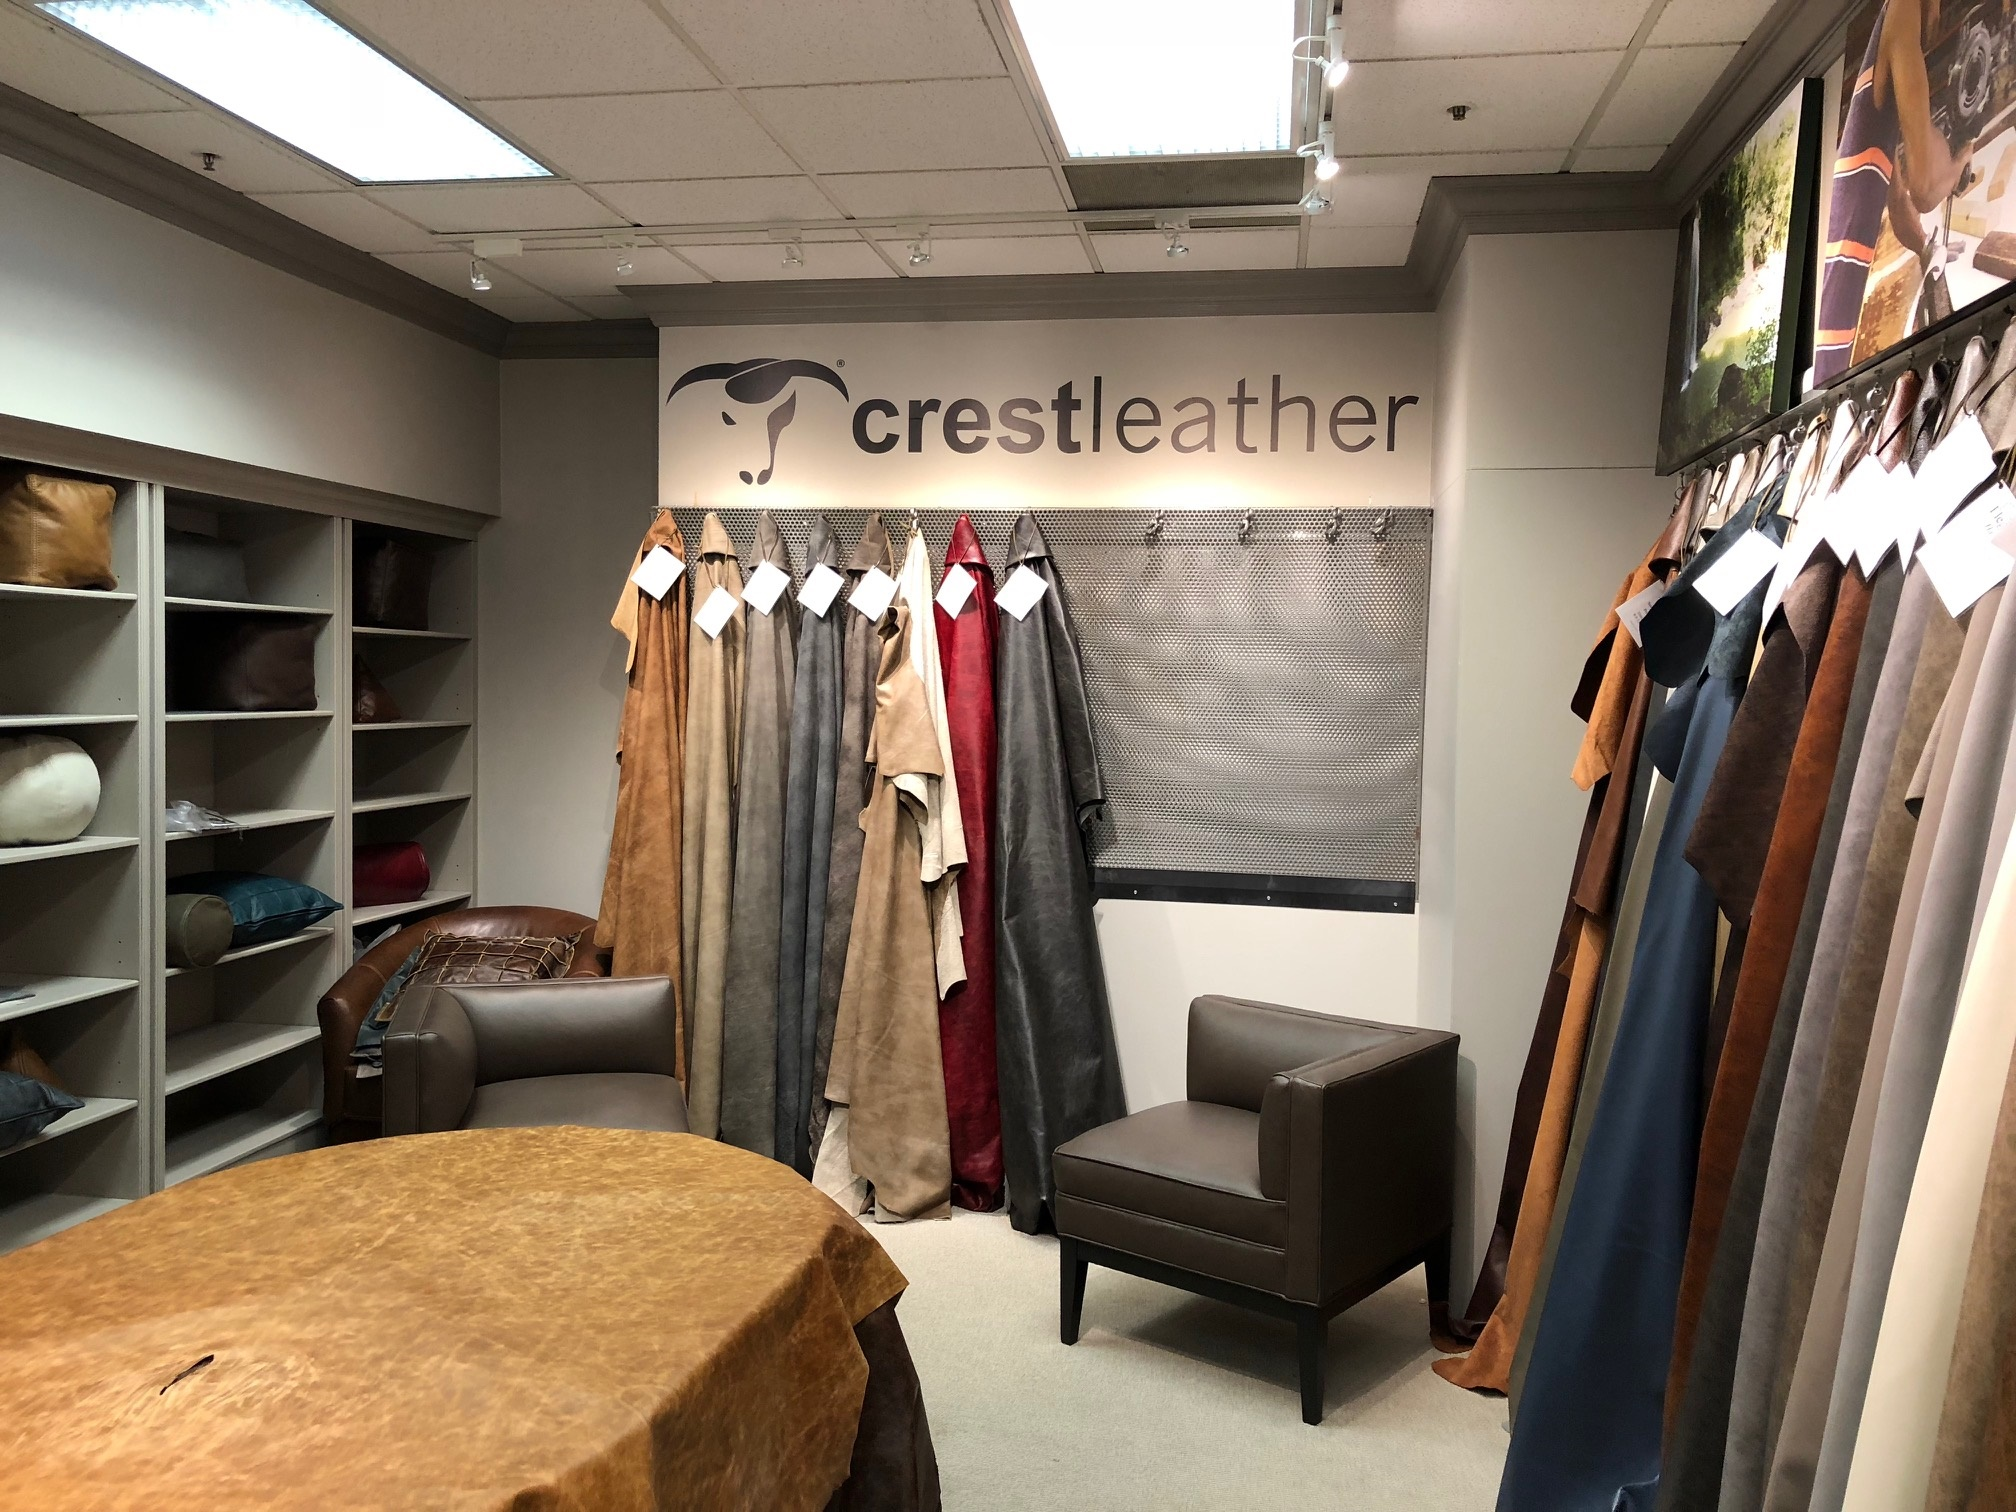 Crest Leather's show space in STI's Showroom in High Point, NC